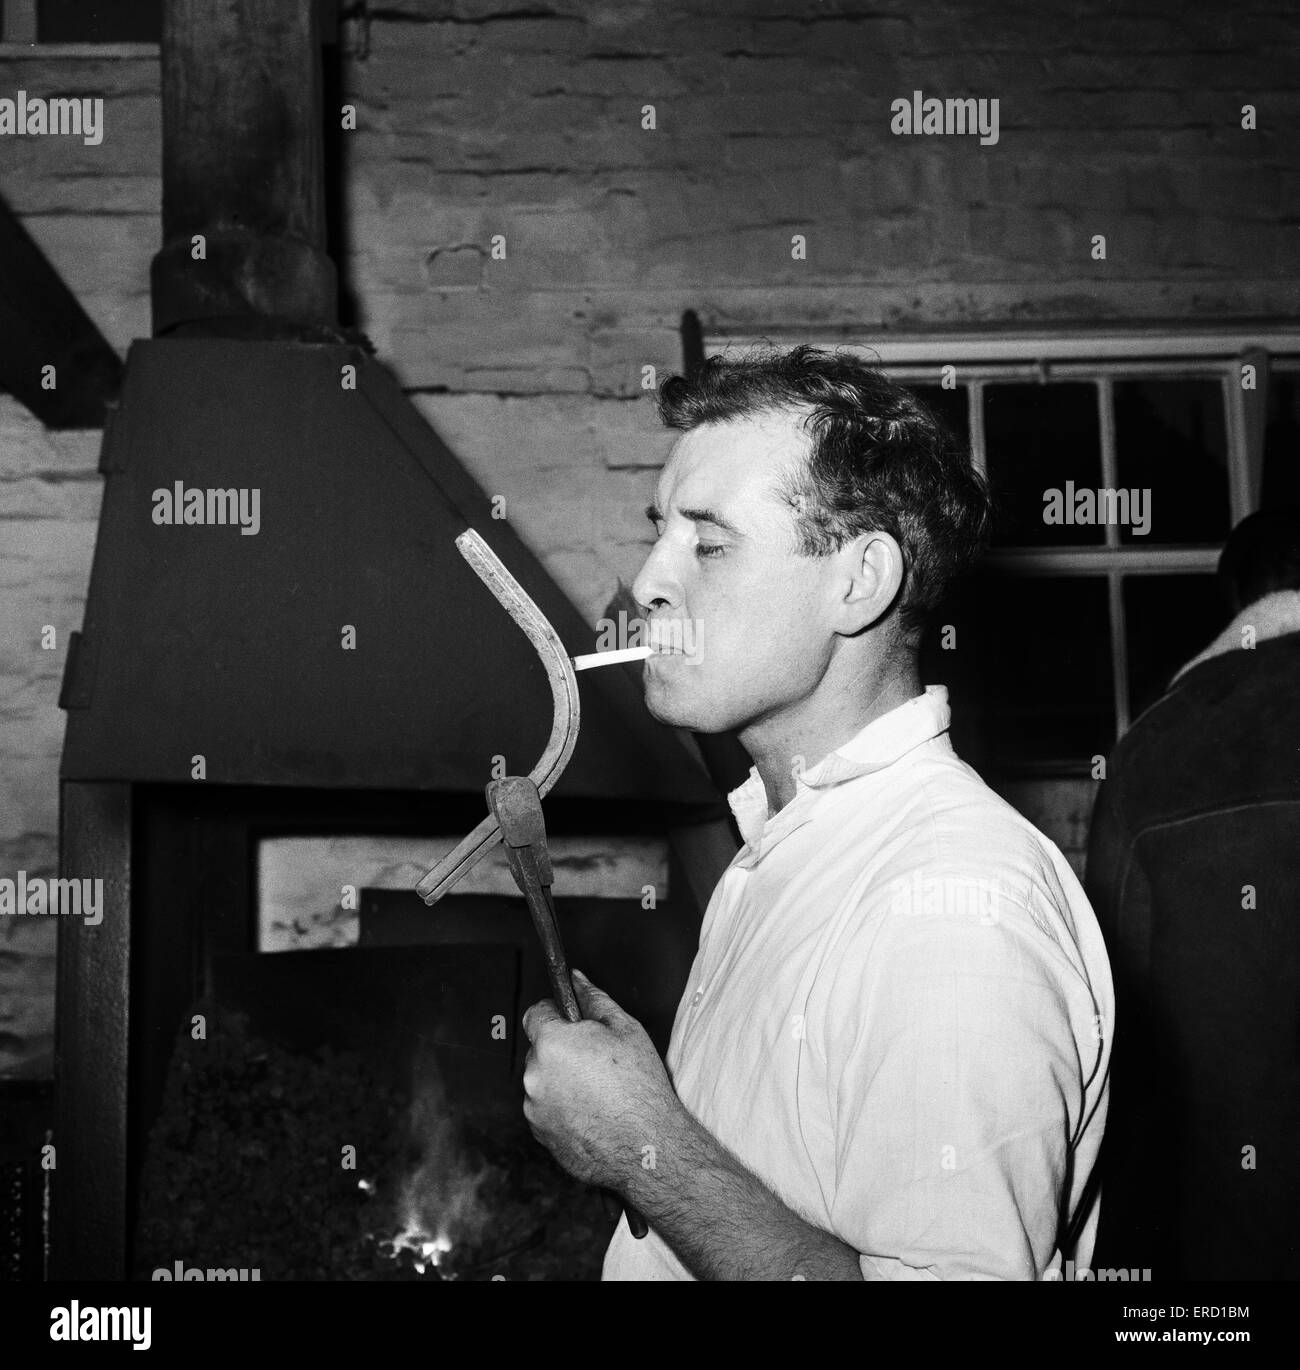 Pictures takes at stables at Newmarket, behind the scenes Horse shoe maker in the Newmarket forge. 3rd March 1964. - Stock Image